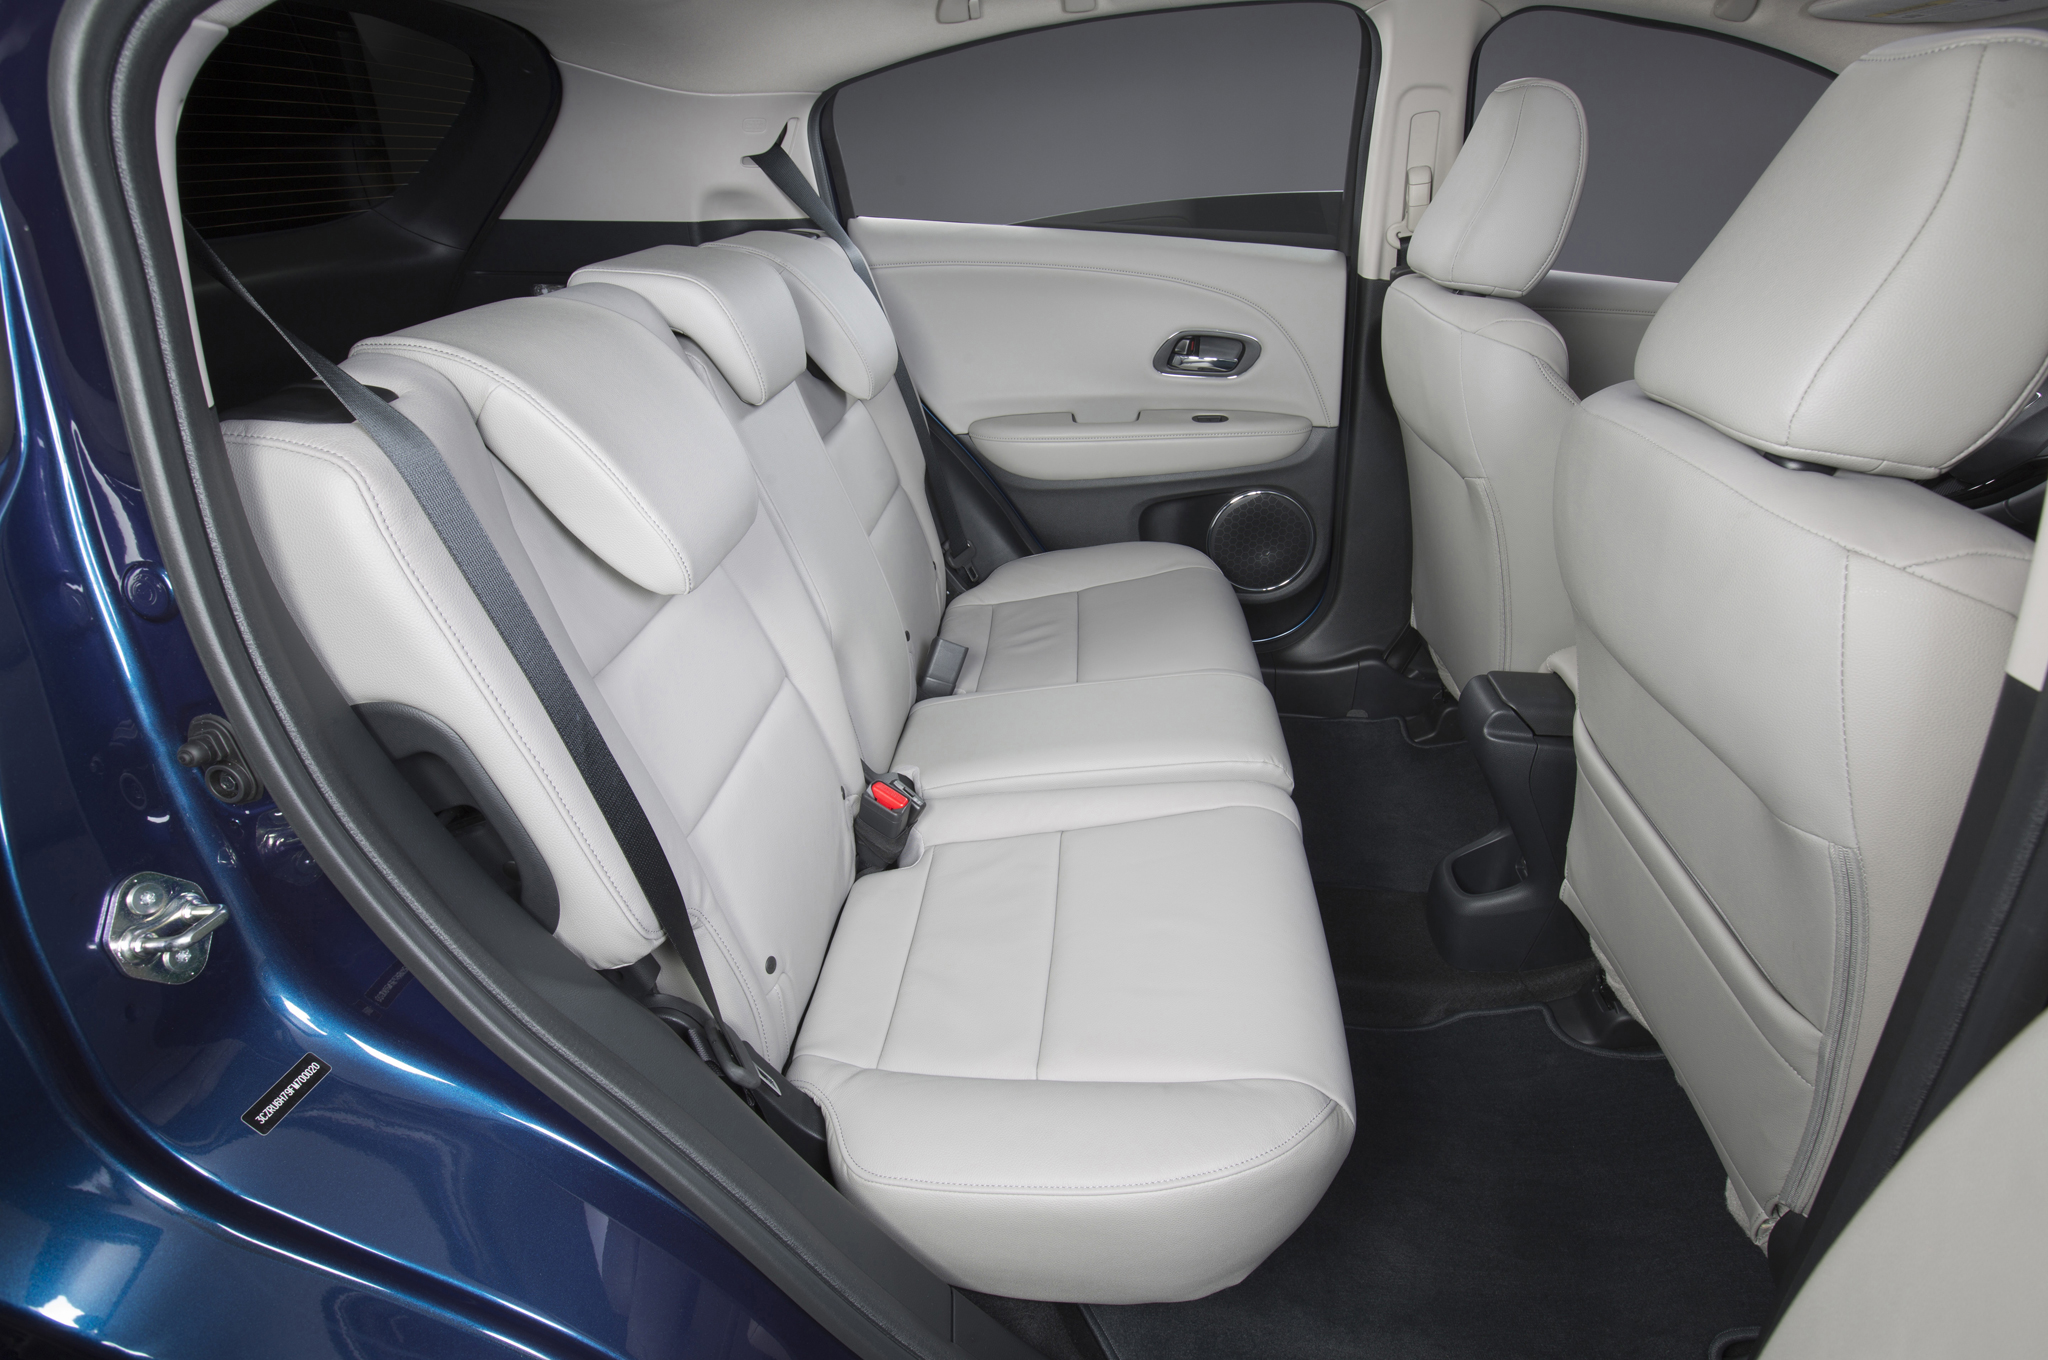 2016 Honda Hr V Rear Seats View (Photo 12 of 14)